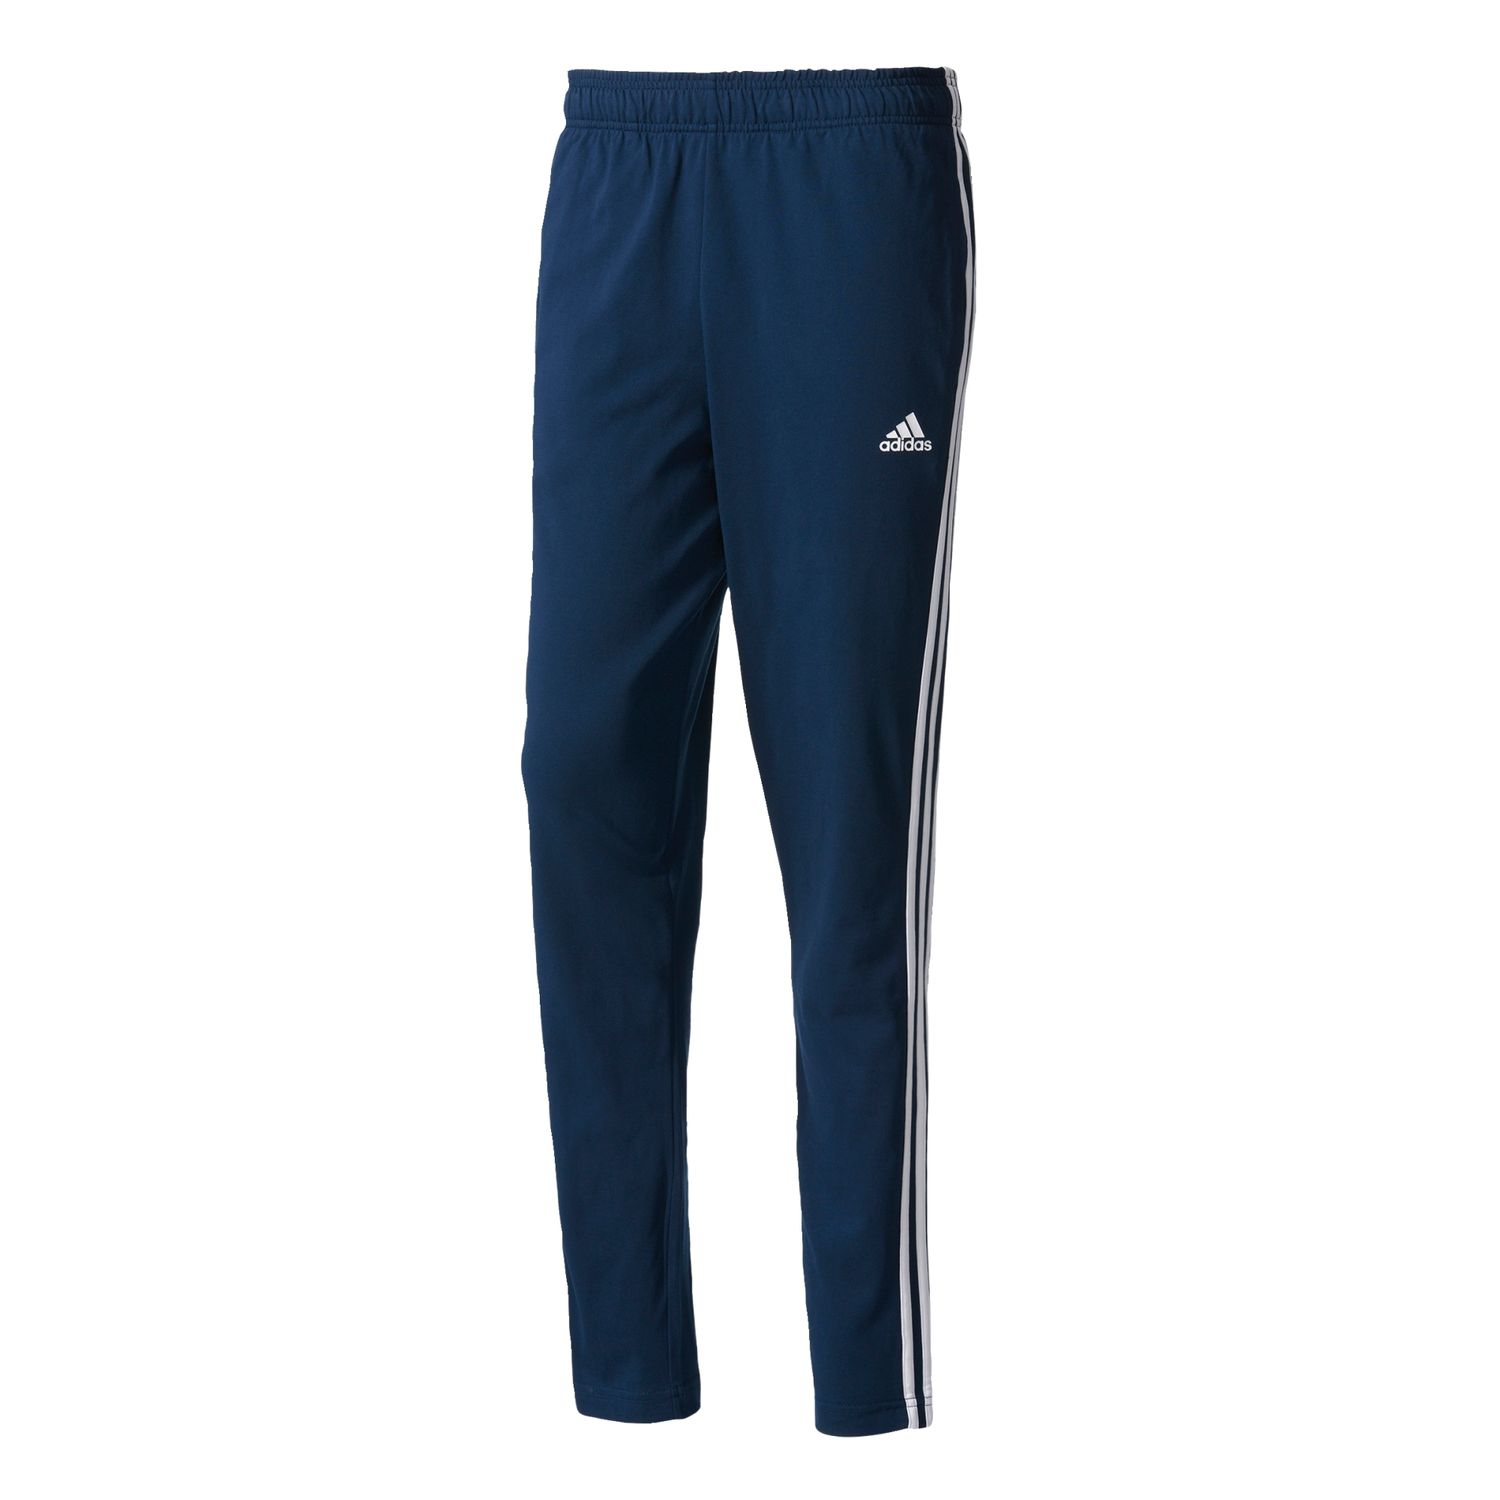 adidas Essentials 3S Tapered Single Jersey Pant Herren Trainingshose – Bild 1